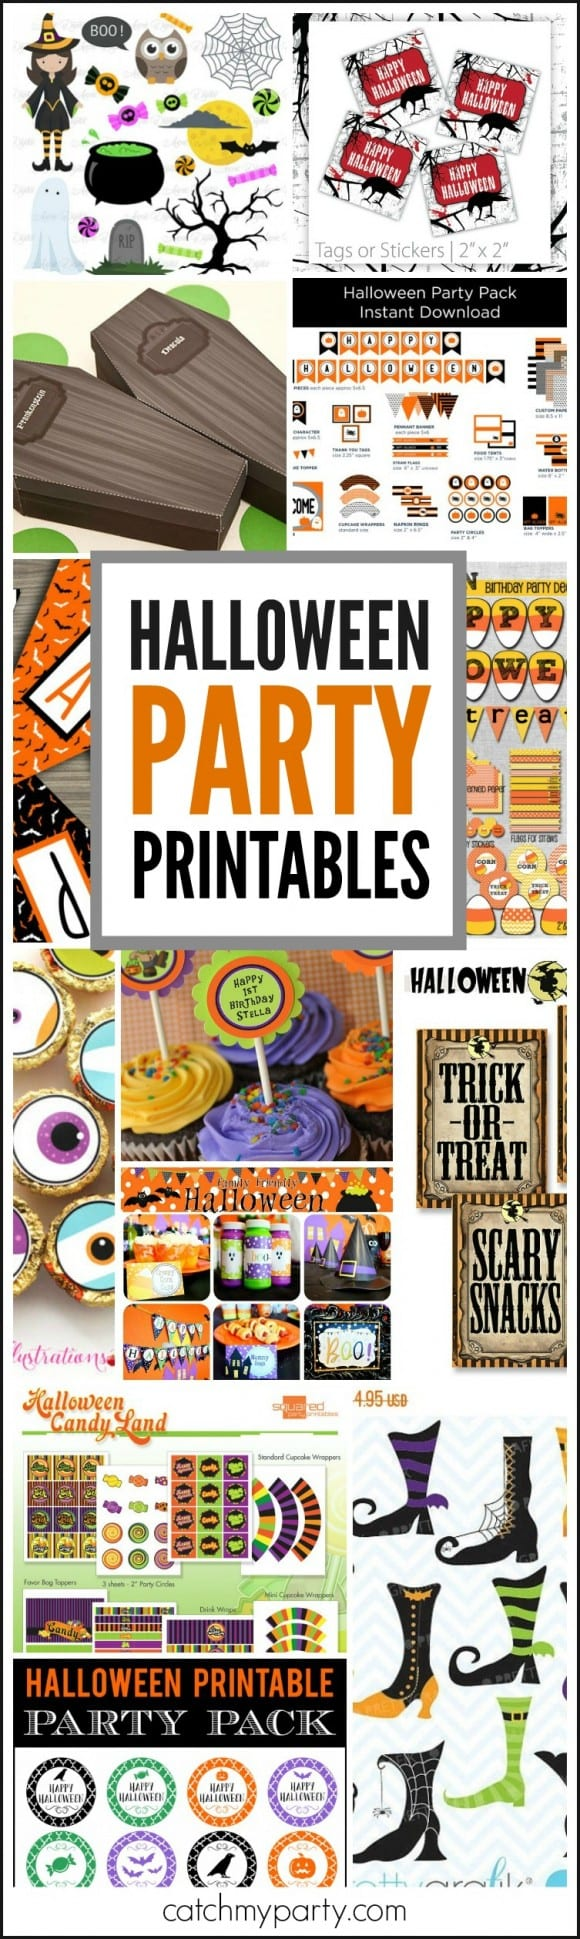 Halloween Party Printables for throwing a Halloween party | CatchMyParty.com